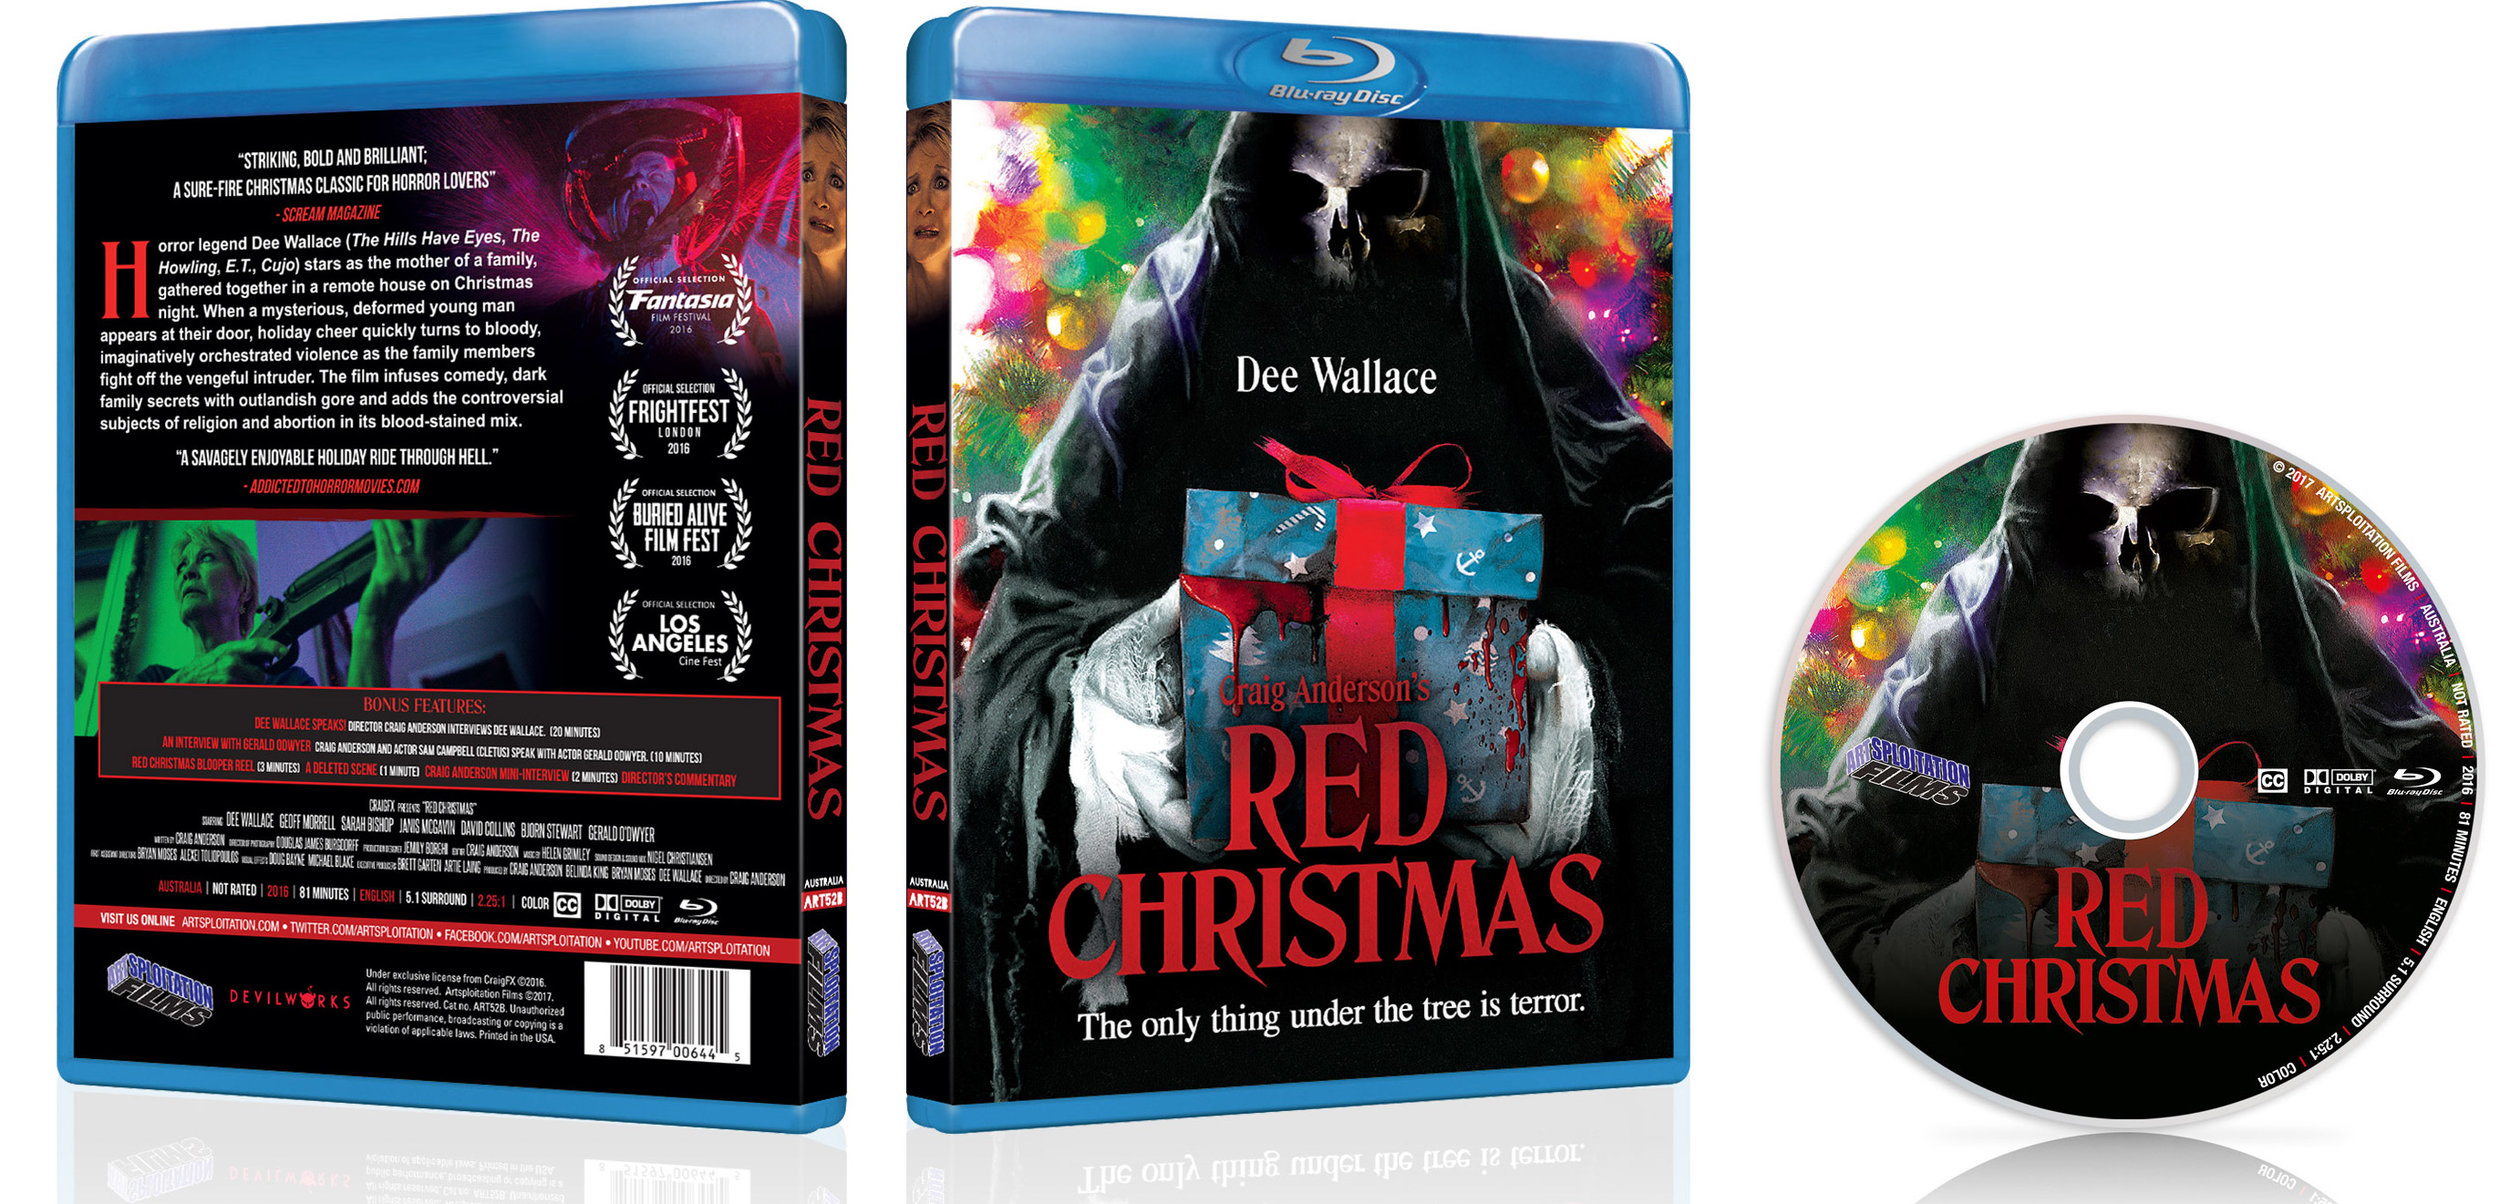 The Blu-ray (SRP $22.99) and DVD (SRP $17.99) releases of  Red Christmas will exclusively include a feature-length commentary with writer-director Craig Anderson, interviews with Dee Wallace, Gerald Odwyer and Craig Anderson, bloopers and more.